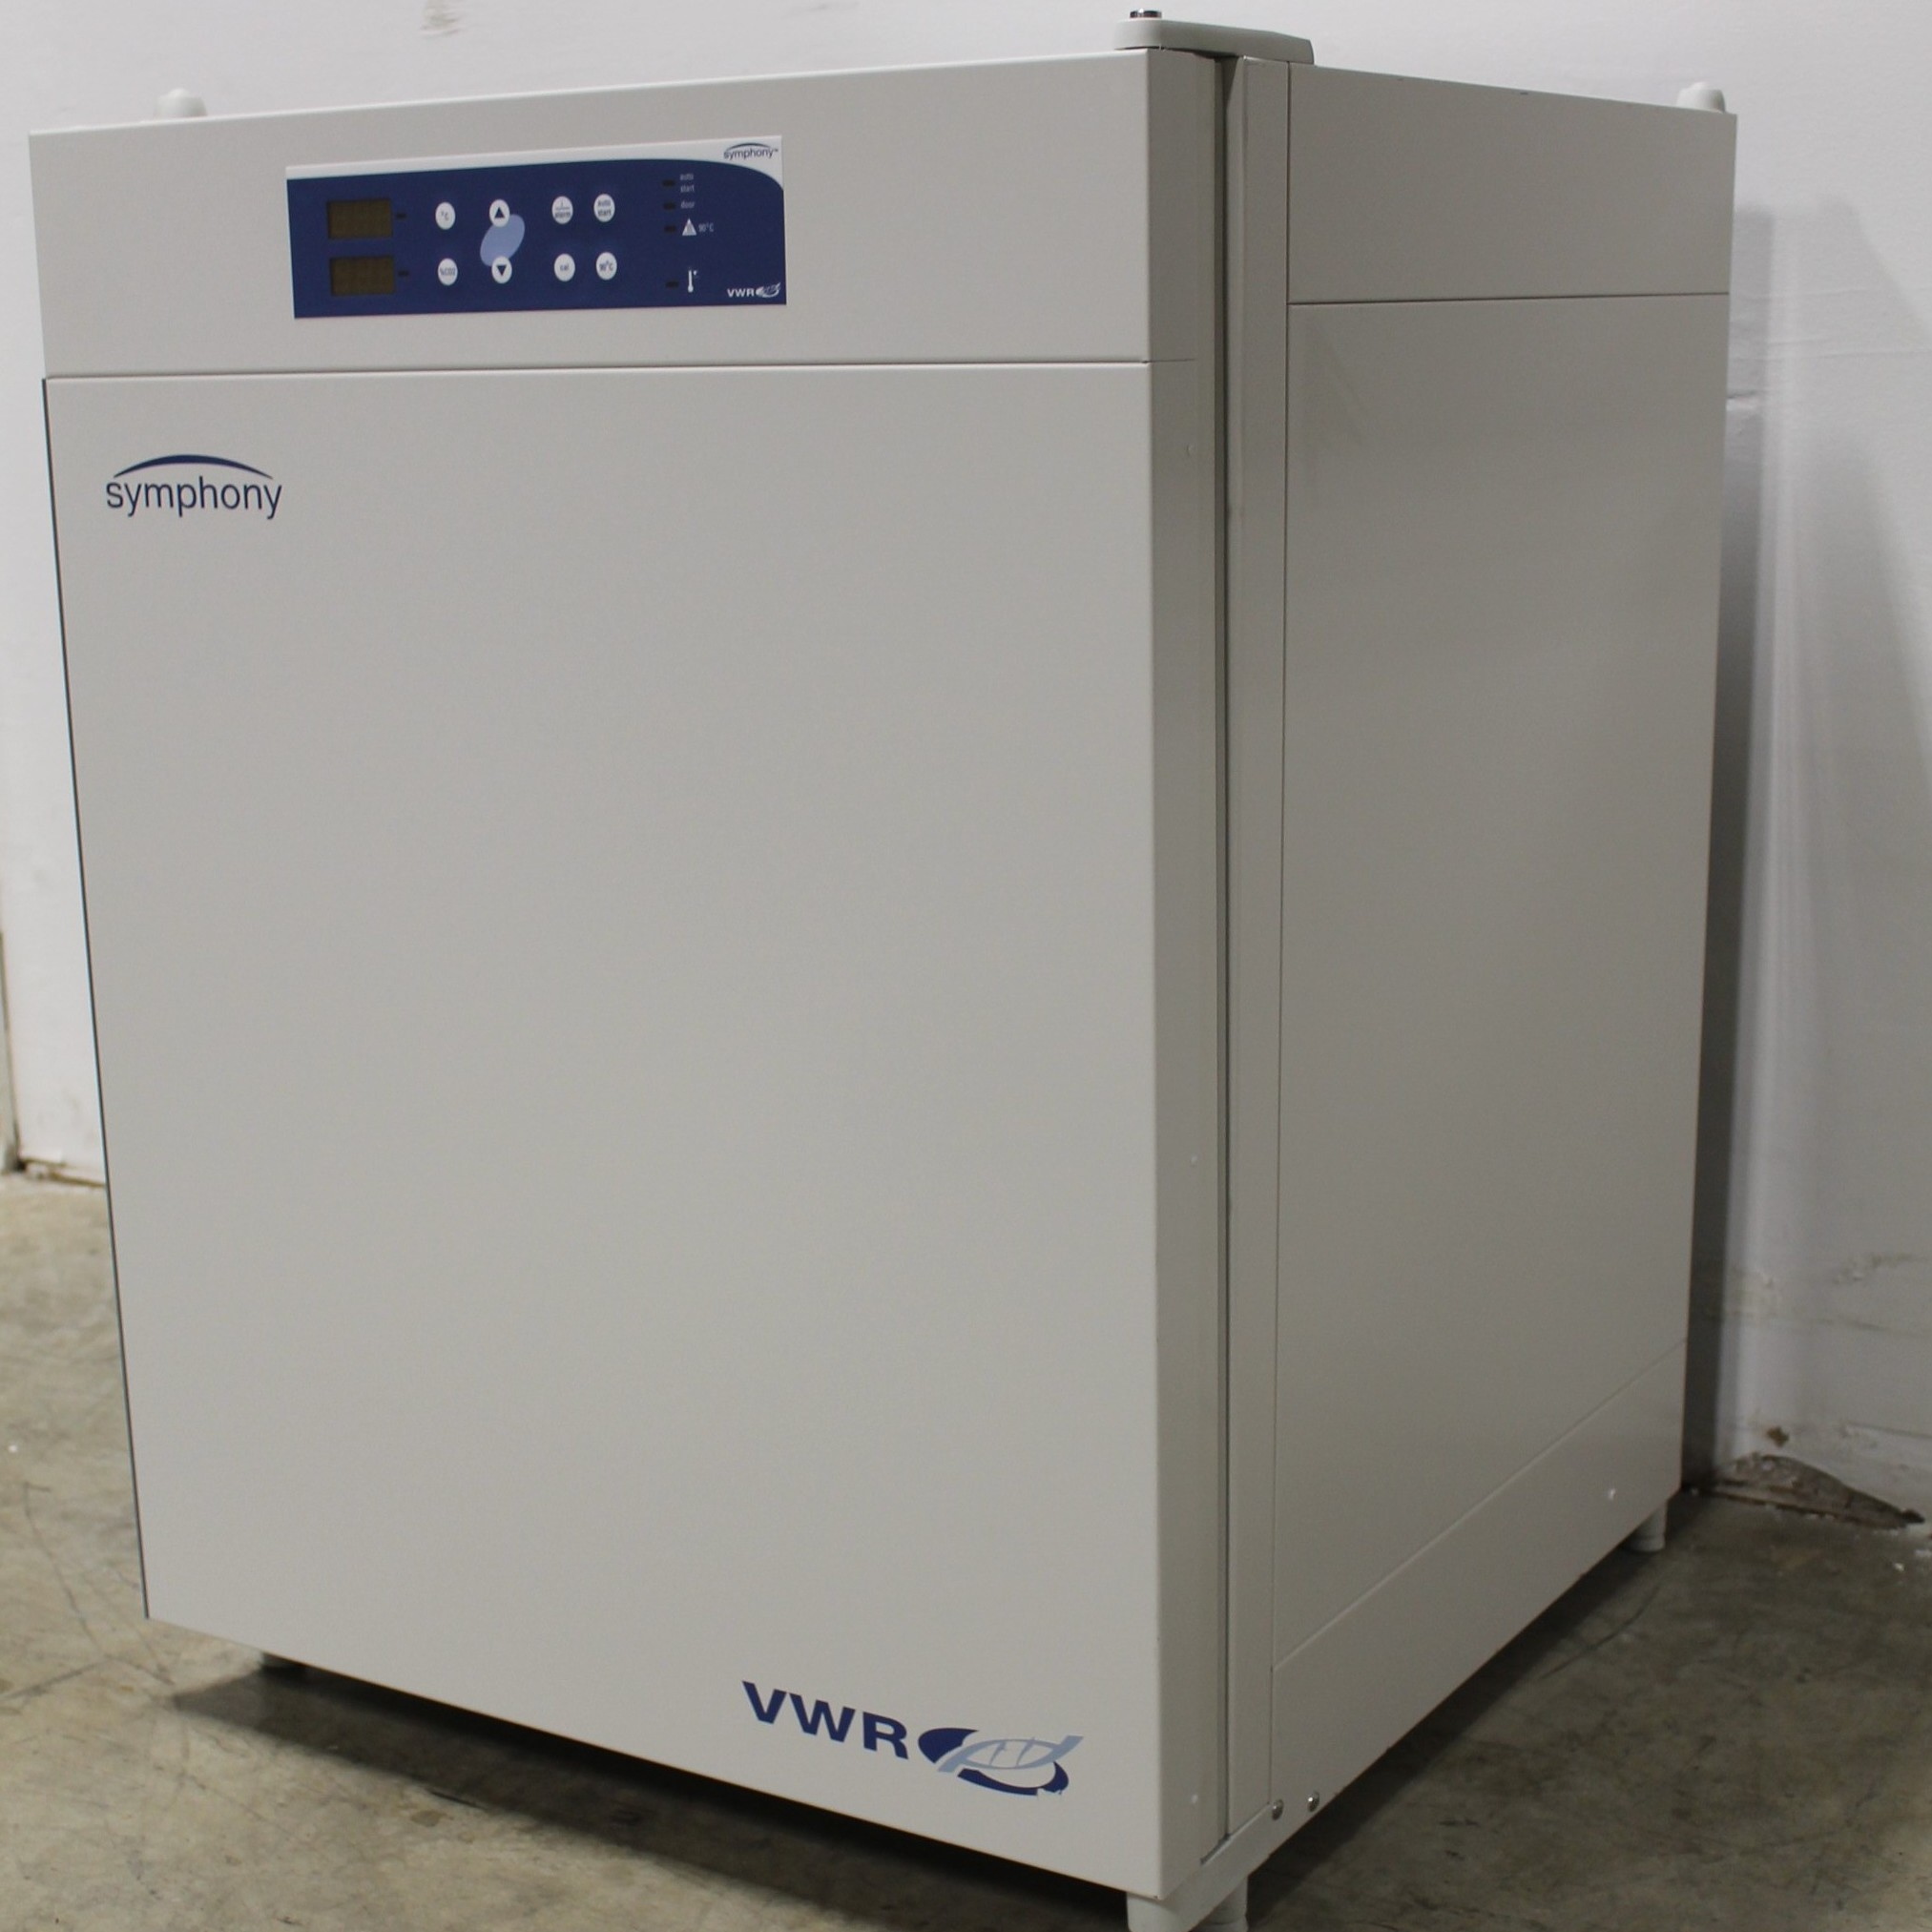 VWR Symphony Air-Jacketed CO2 Incubator Model 5.3A Image